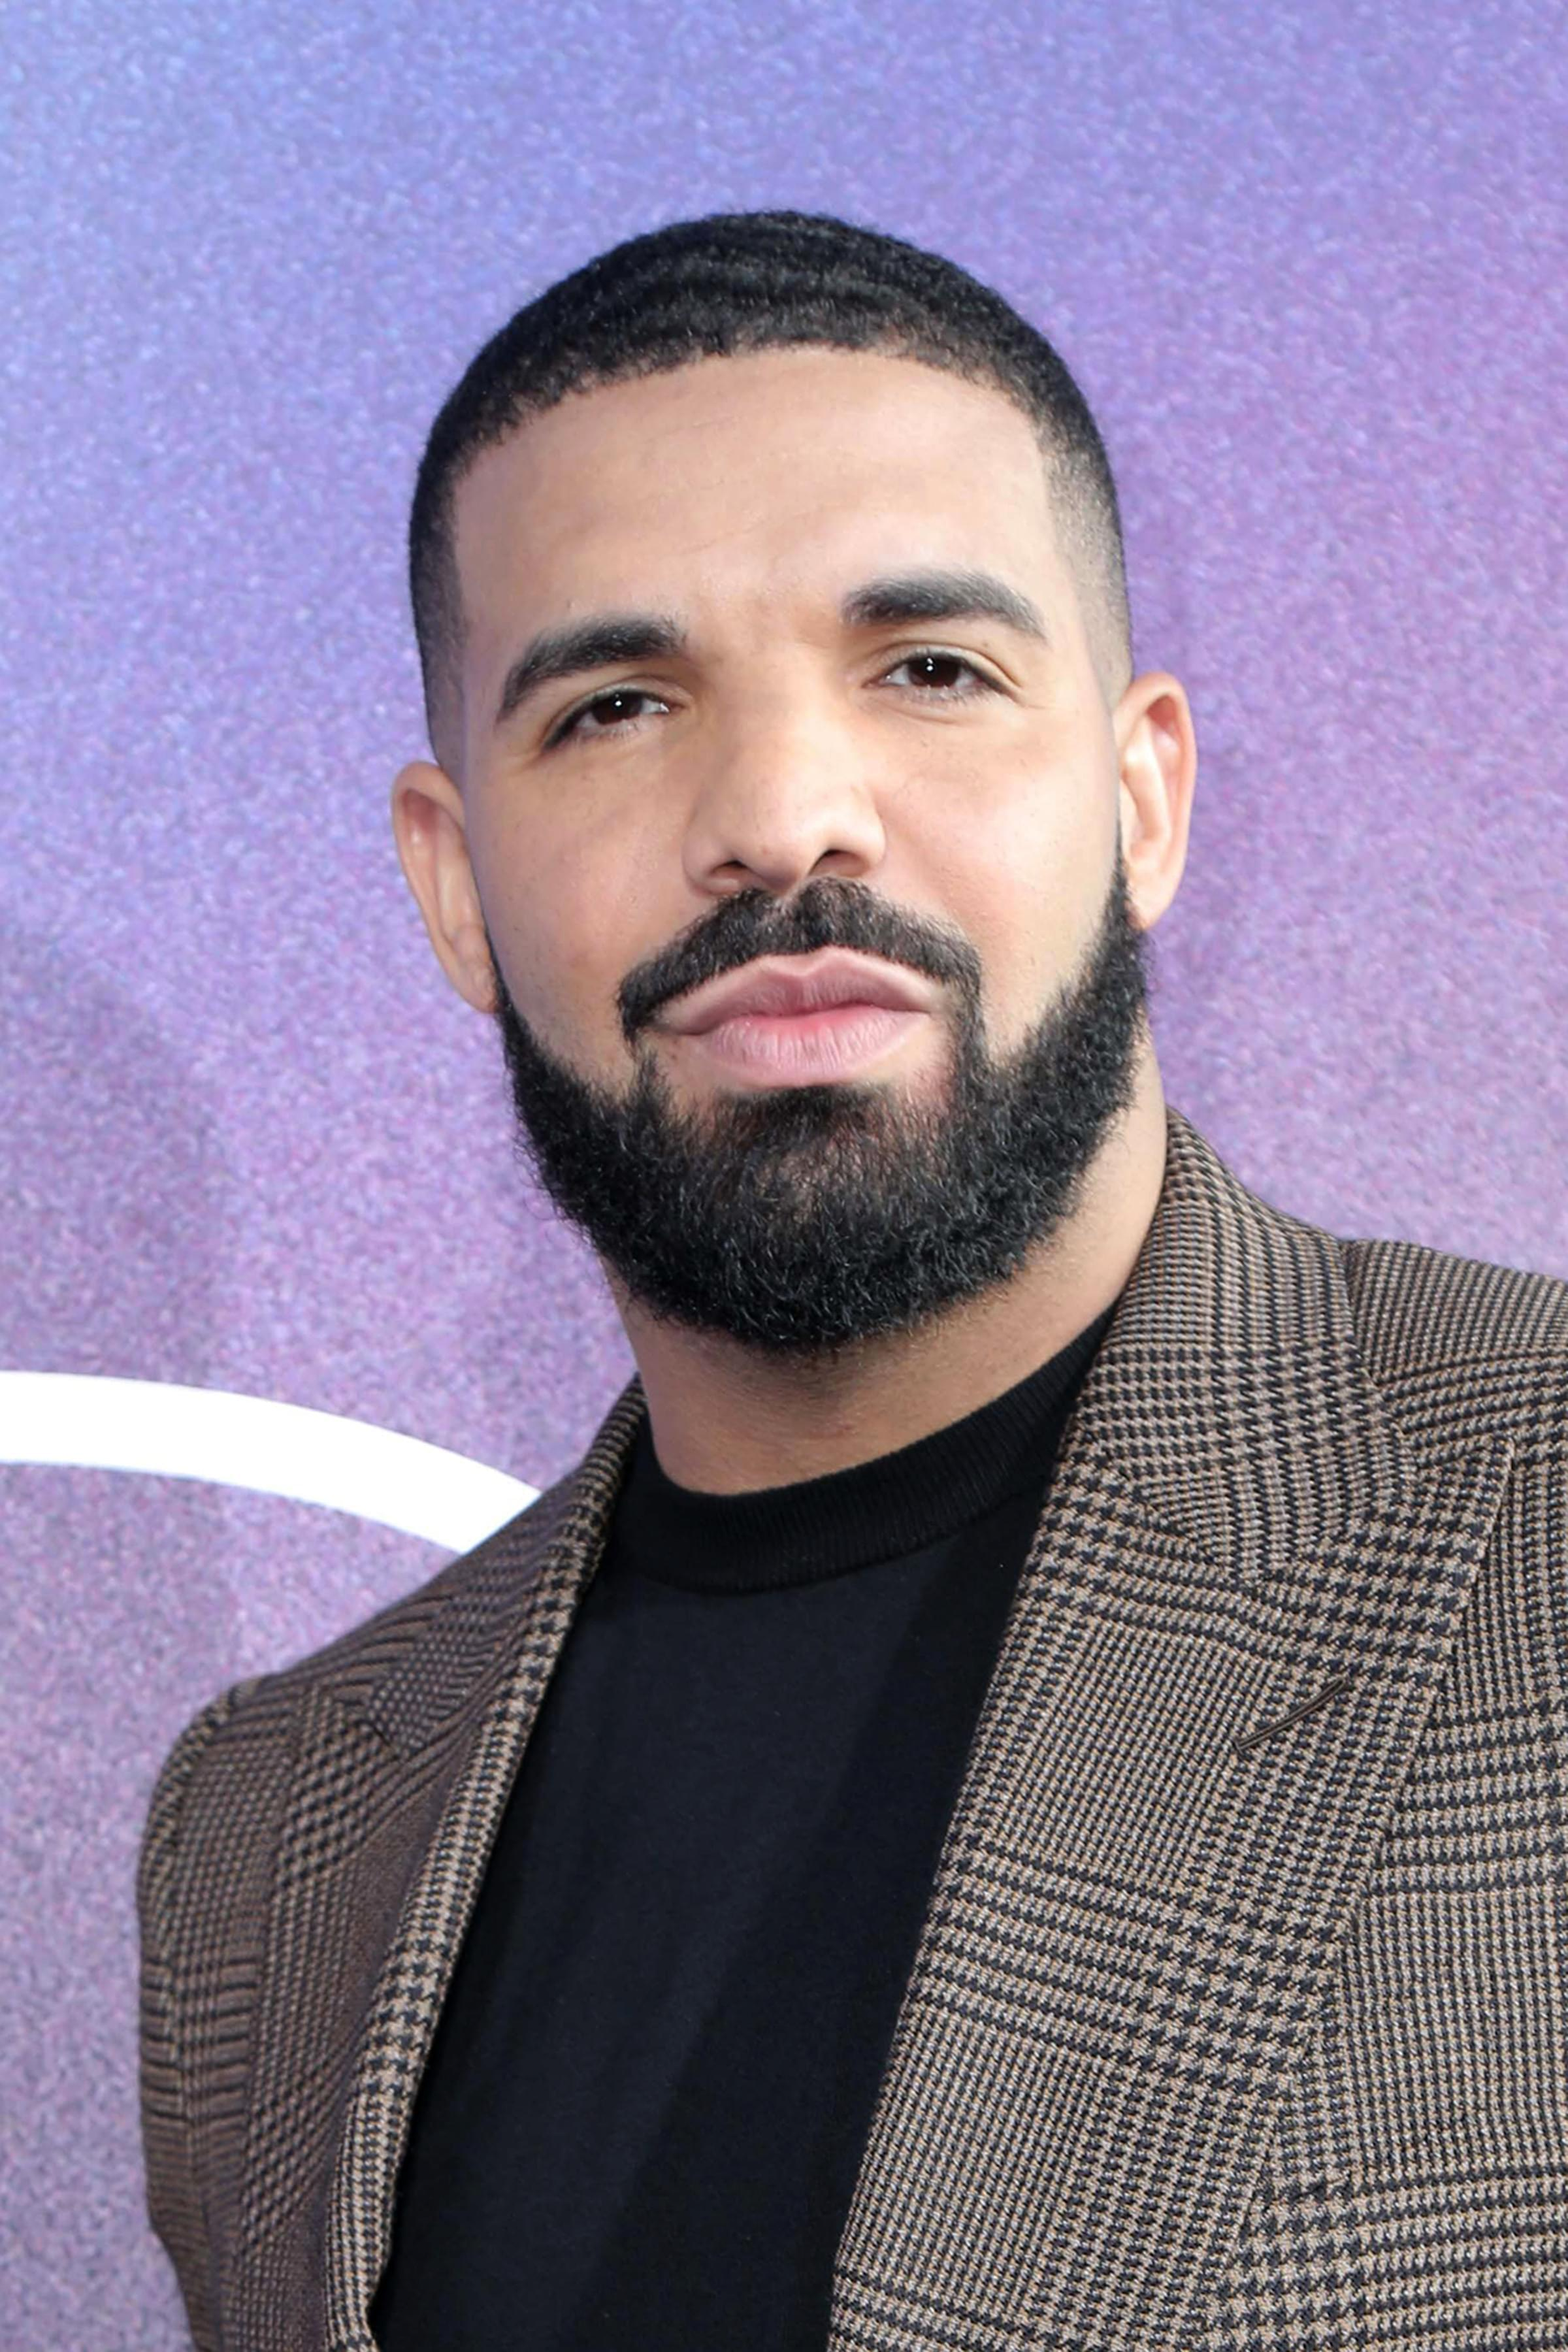 DRAKE ANNOUNCES NEW MUSIC ON THE WAY!